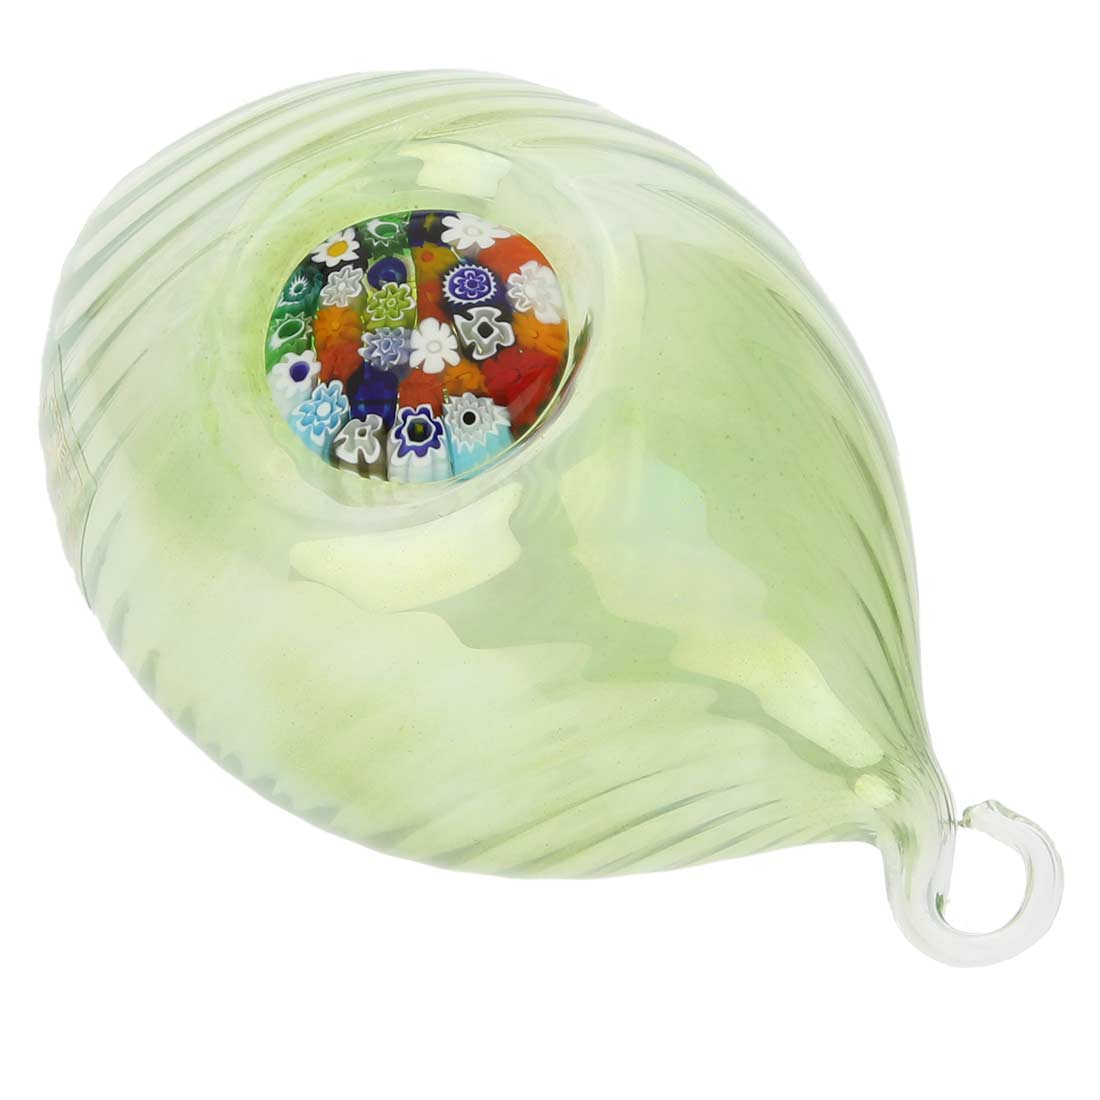 Murano Glass Millefiori Christmas Ornament - Green